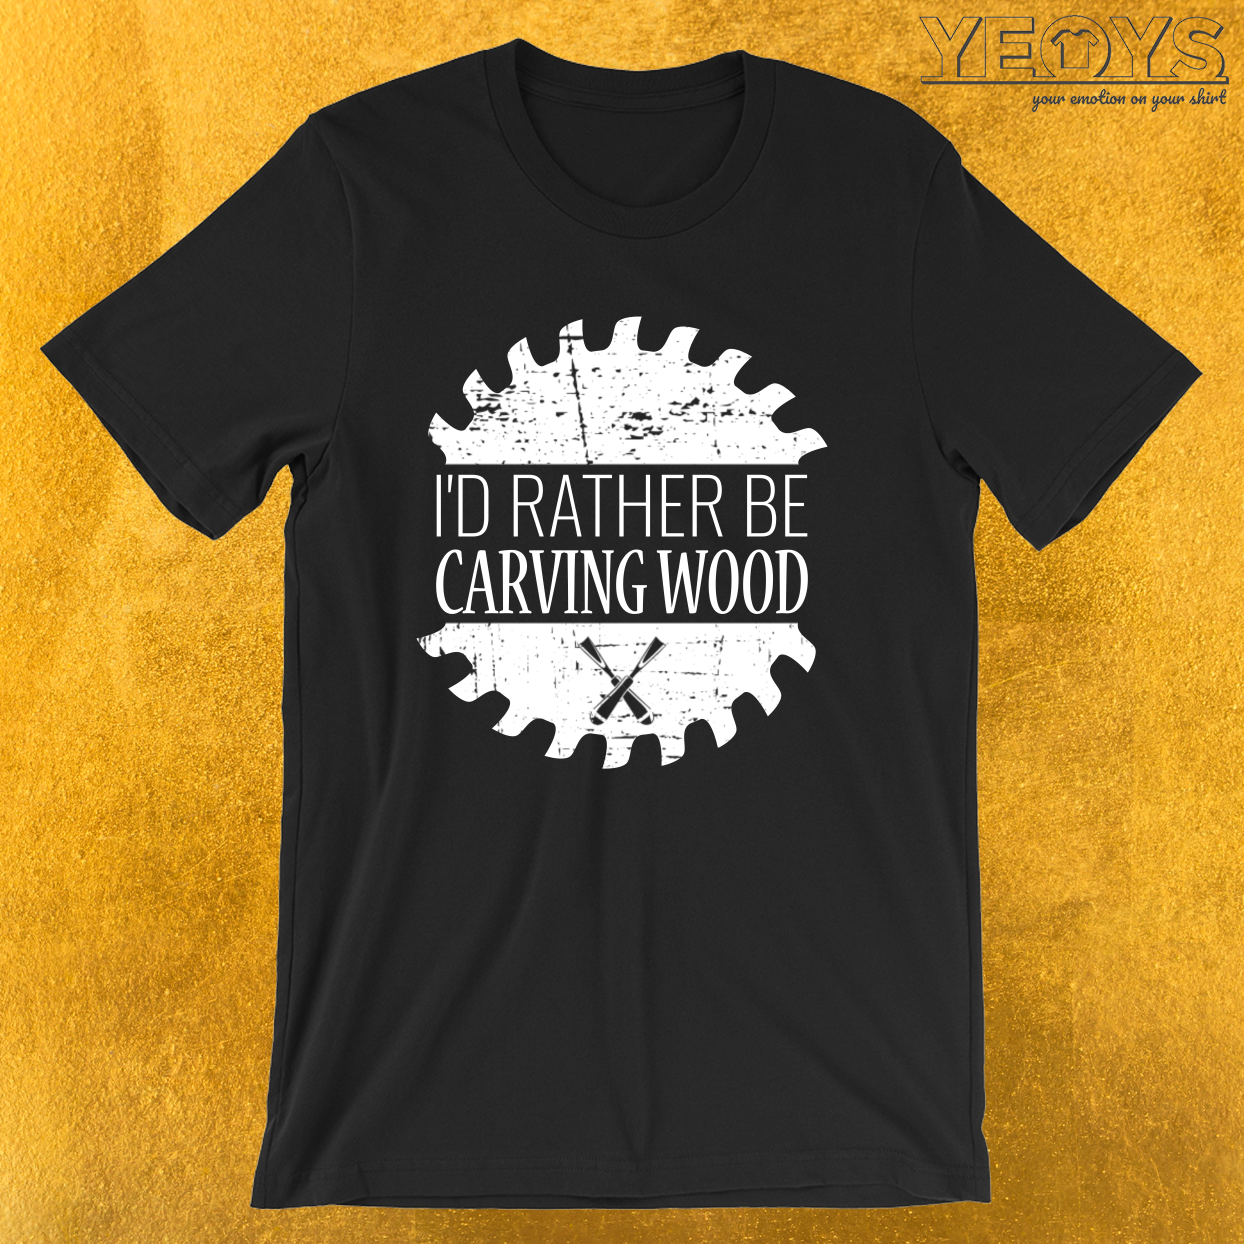 I'd Rather Be Carving Wood – Whittle Wood Tee